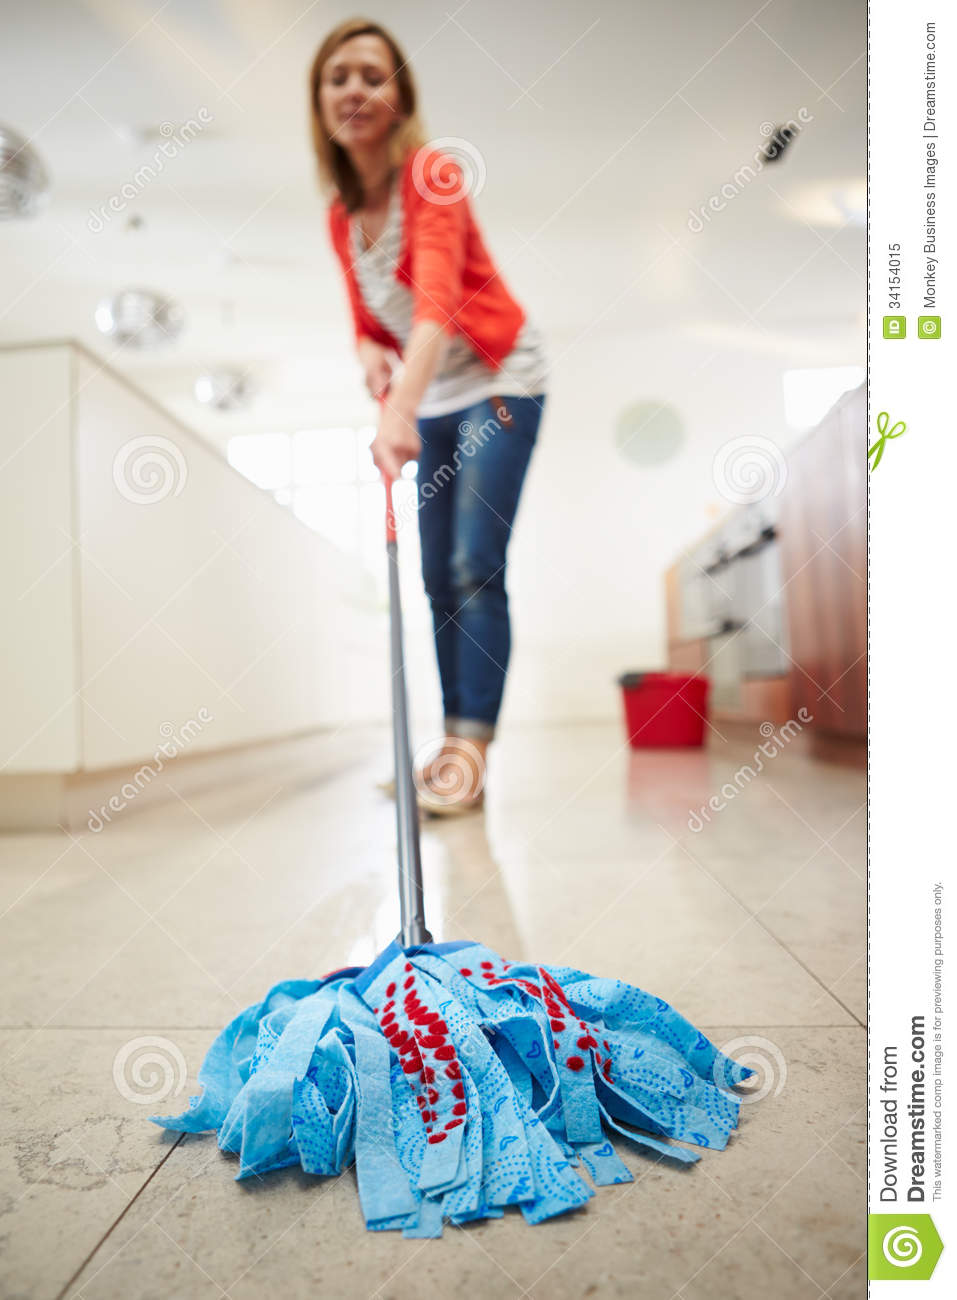 Kitchen Floor Mop Woman Mopping Kitchen Floor Royalty Free Stock Photo Image 34154015